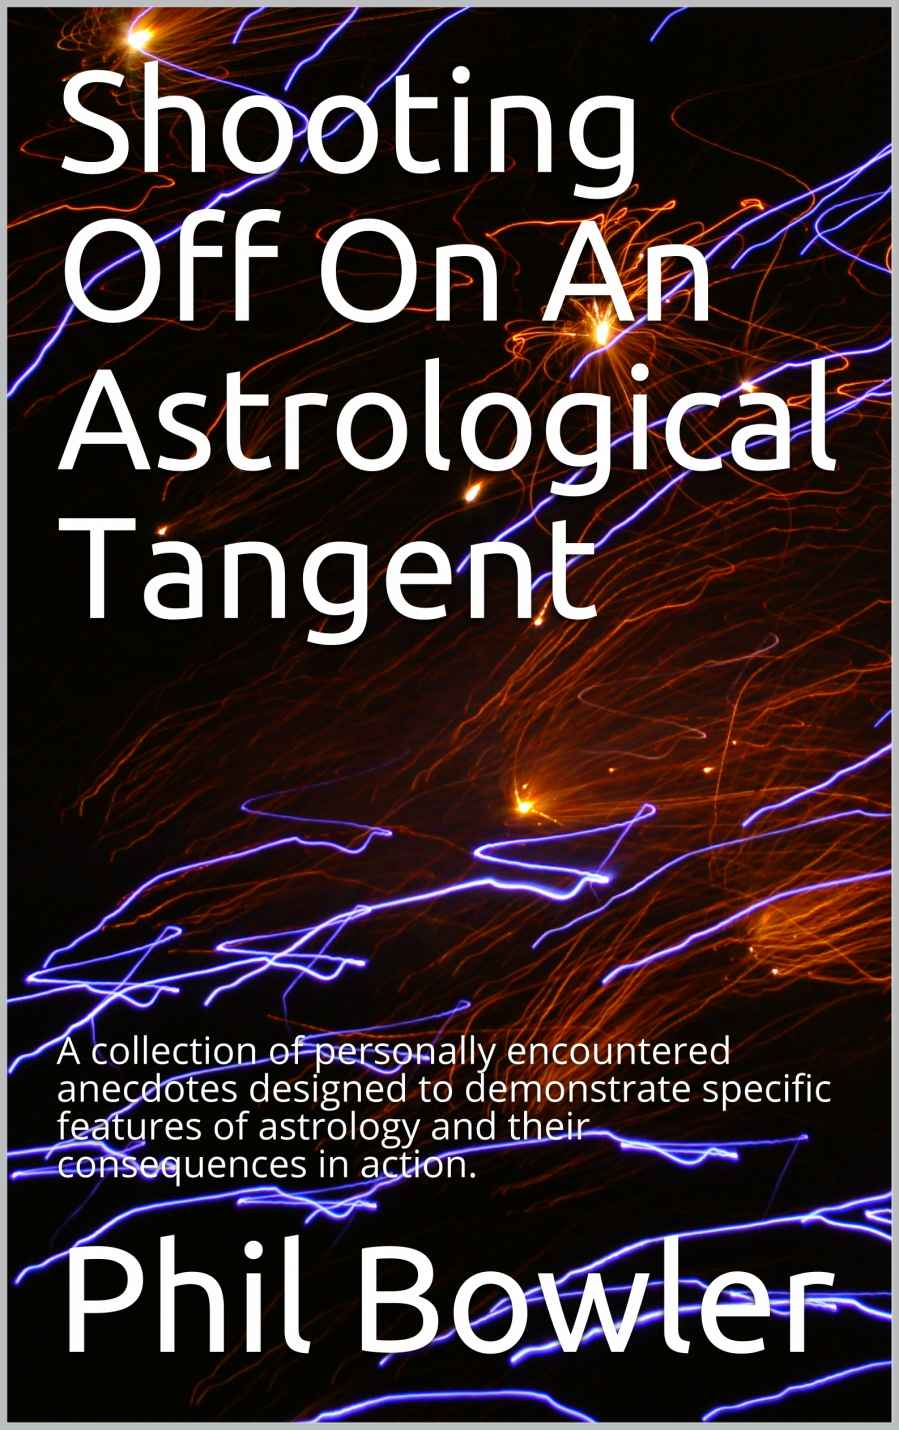 Shooting off on an Astrological Tangent by Phil Bowler